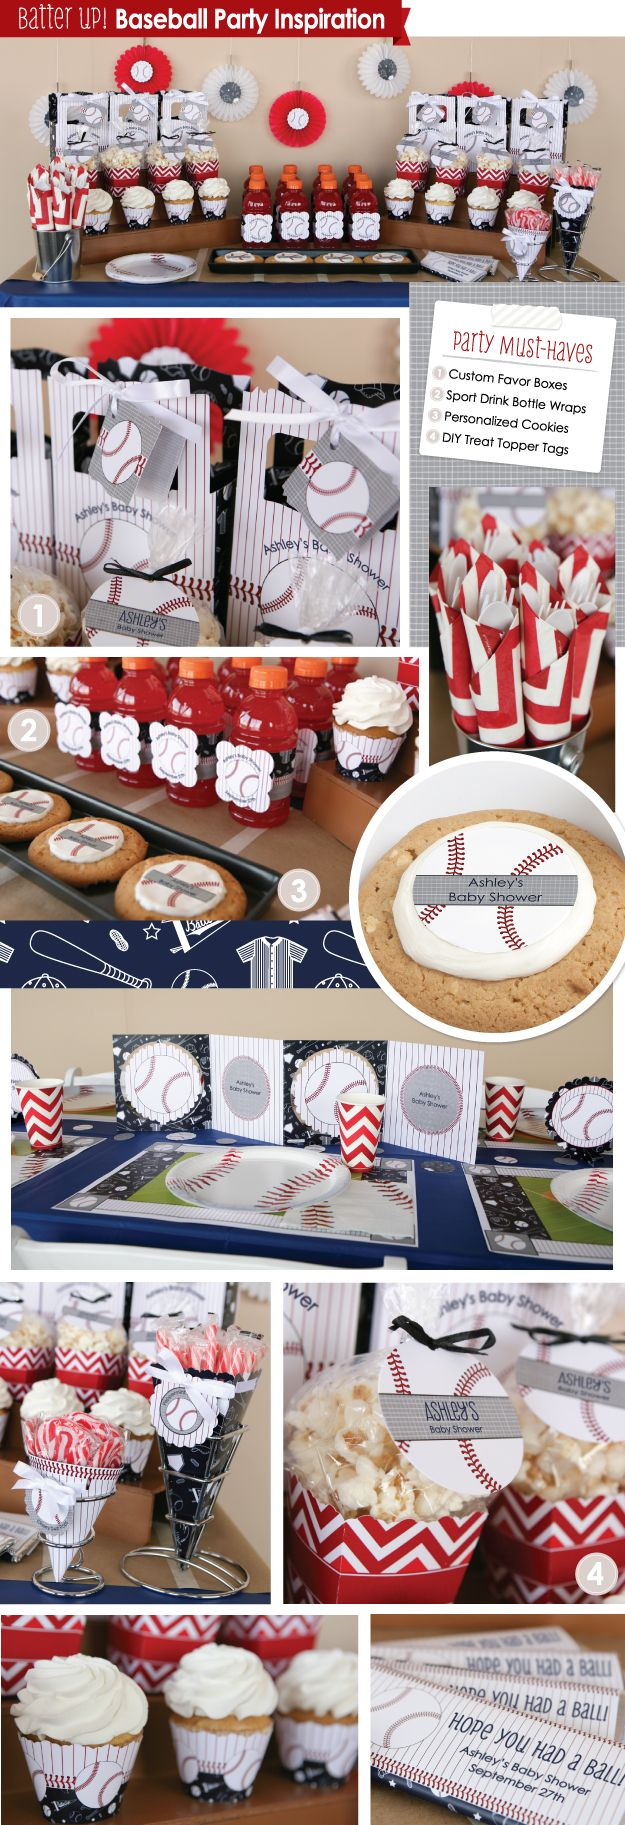 Baseball Party Inspiration Board - Mood Board | DIY Party Decorations - Decorating with a  Baseball Theme